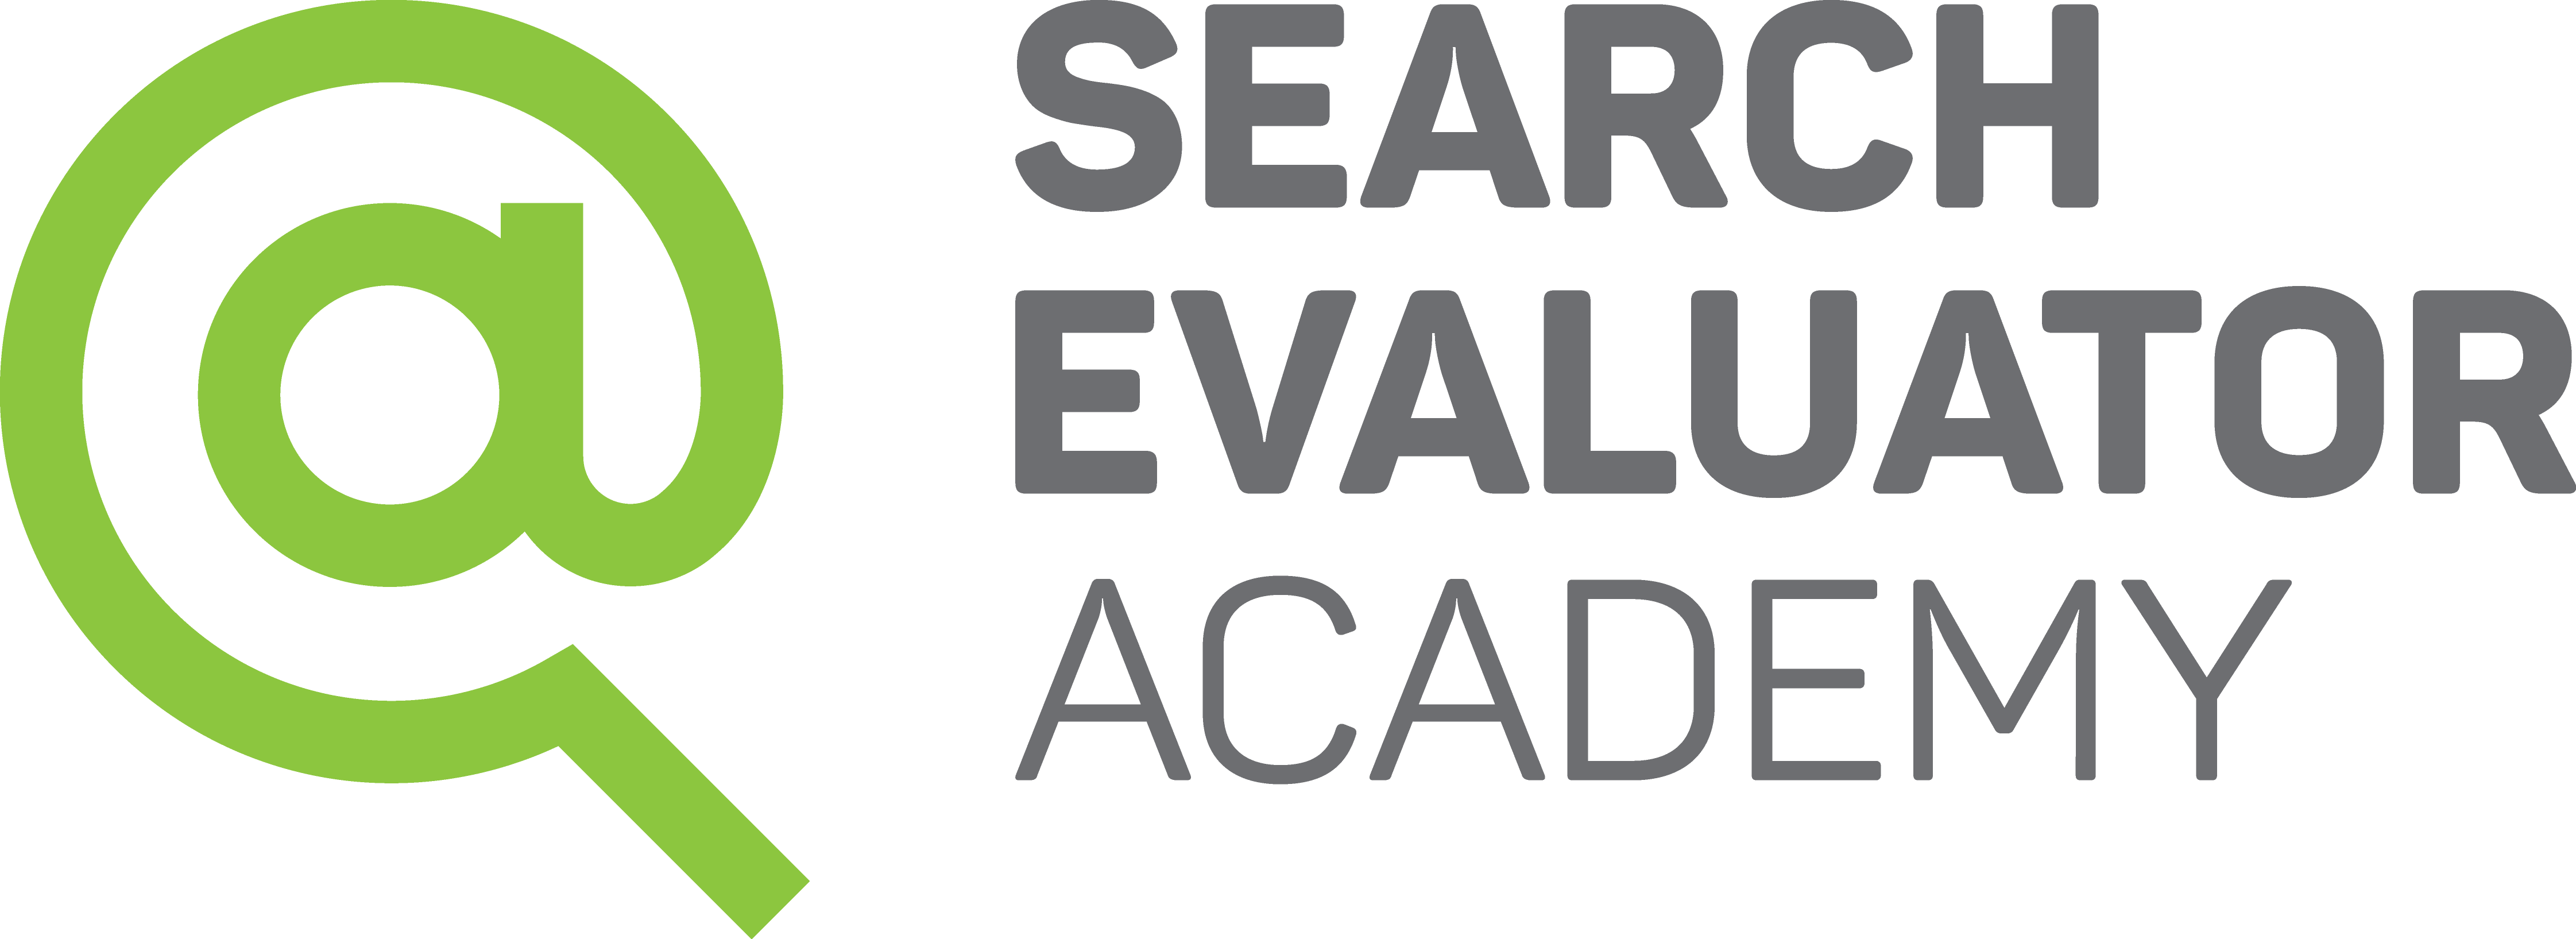 Search Evaluator Academy